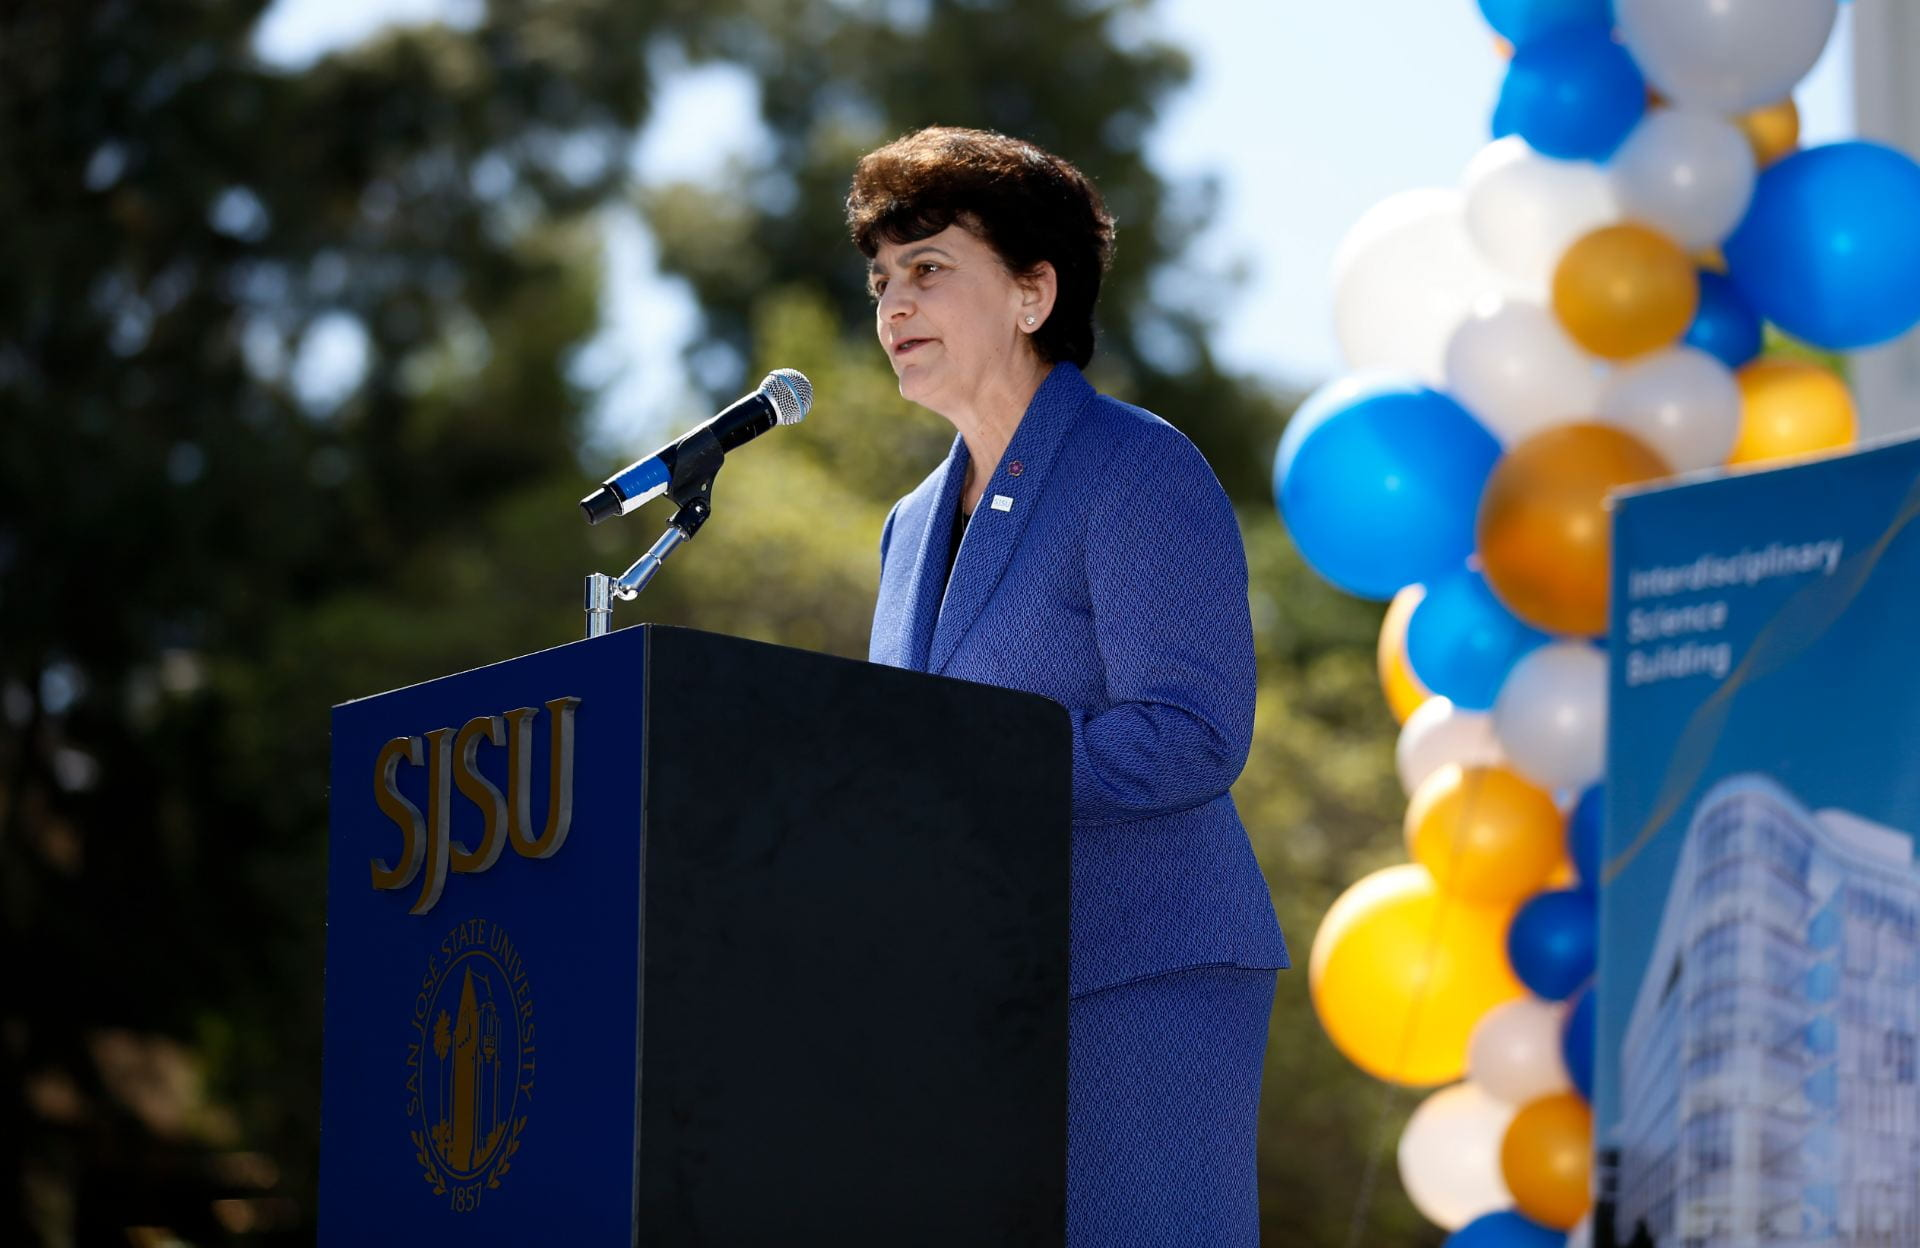 San Jose State University president Dr. Mary A. Papazian, was named to the Silicon Valley Business Journal's 2019 Women of Influence list. (Photo: Josie Lepe, '03 BFA Photography )